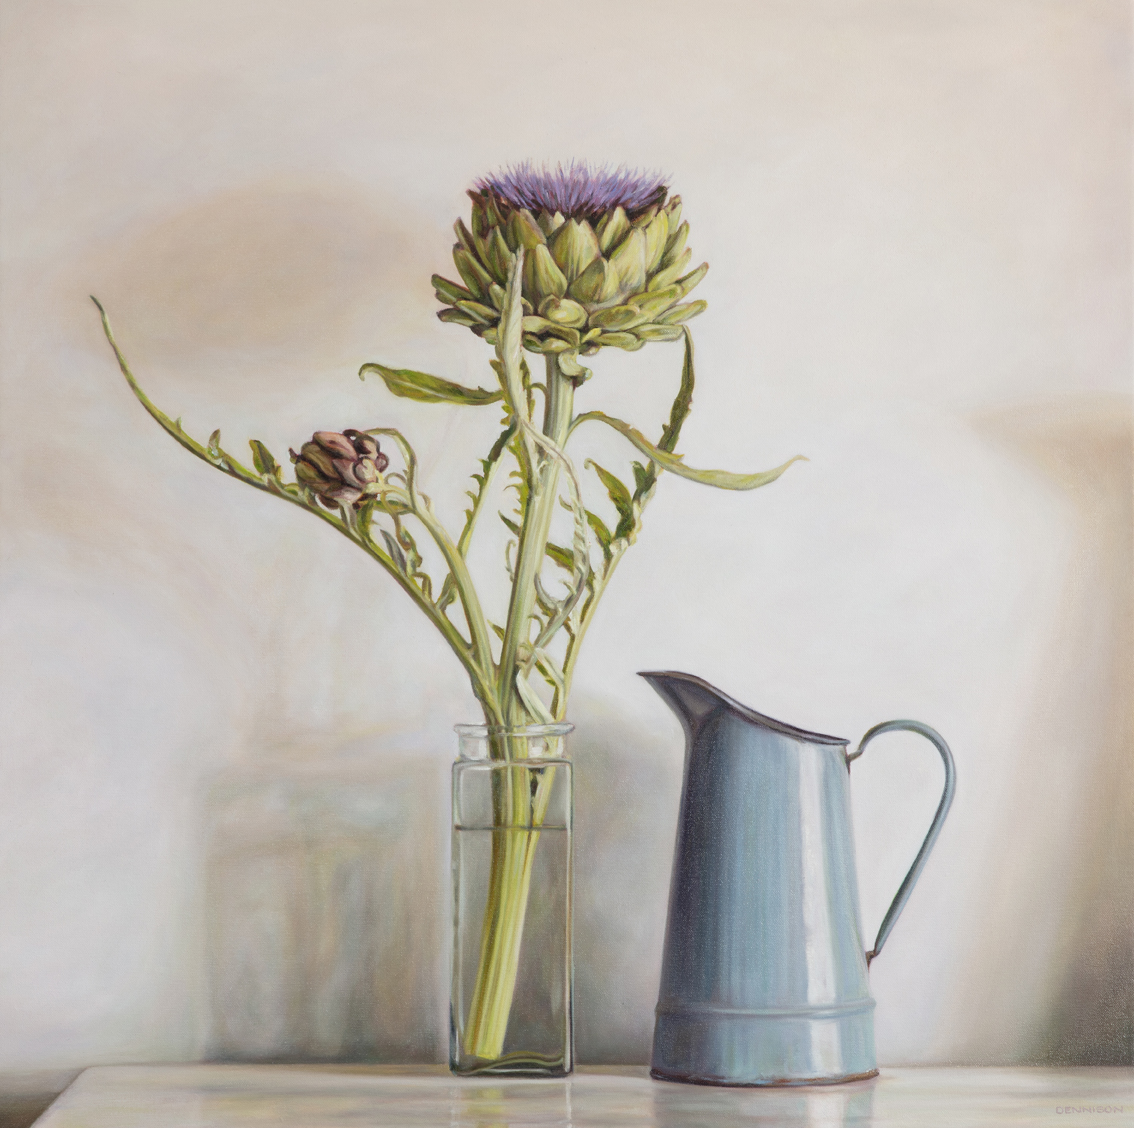 Artichoke Flower and my Mother's Blue Jug   Oil on Canvas, 85 x 85cm, SOLD